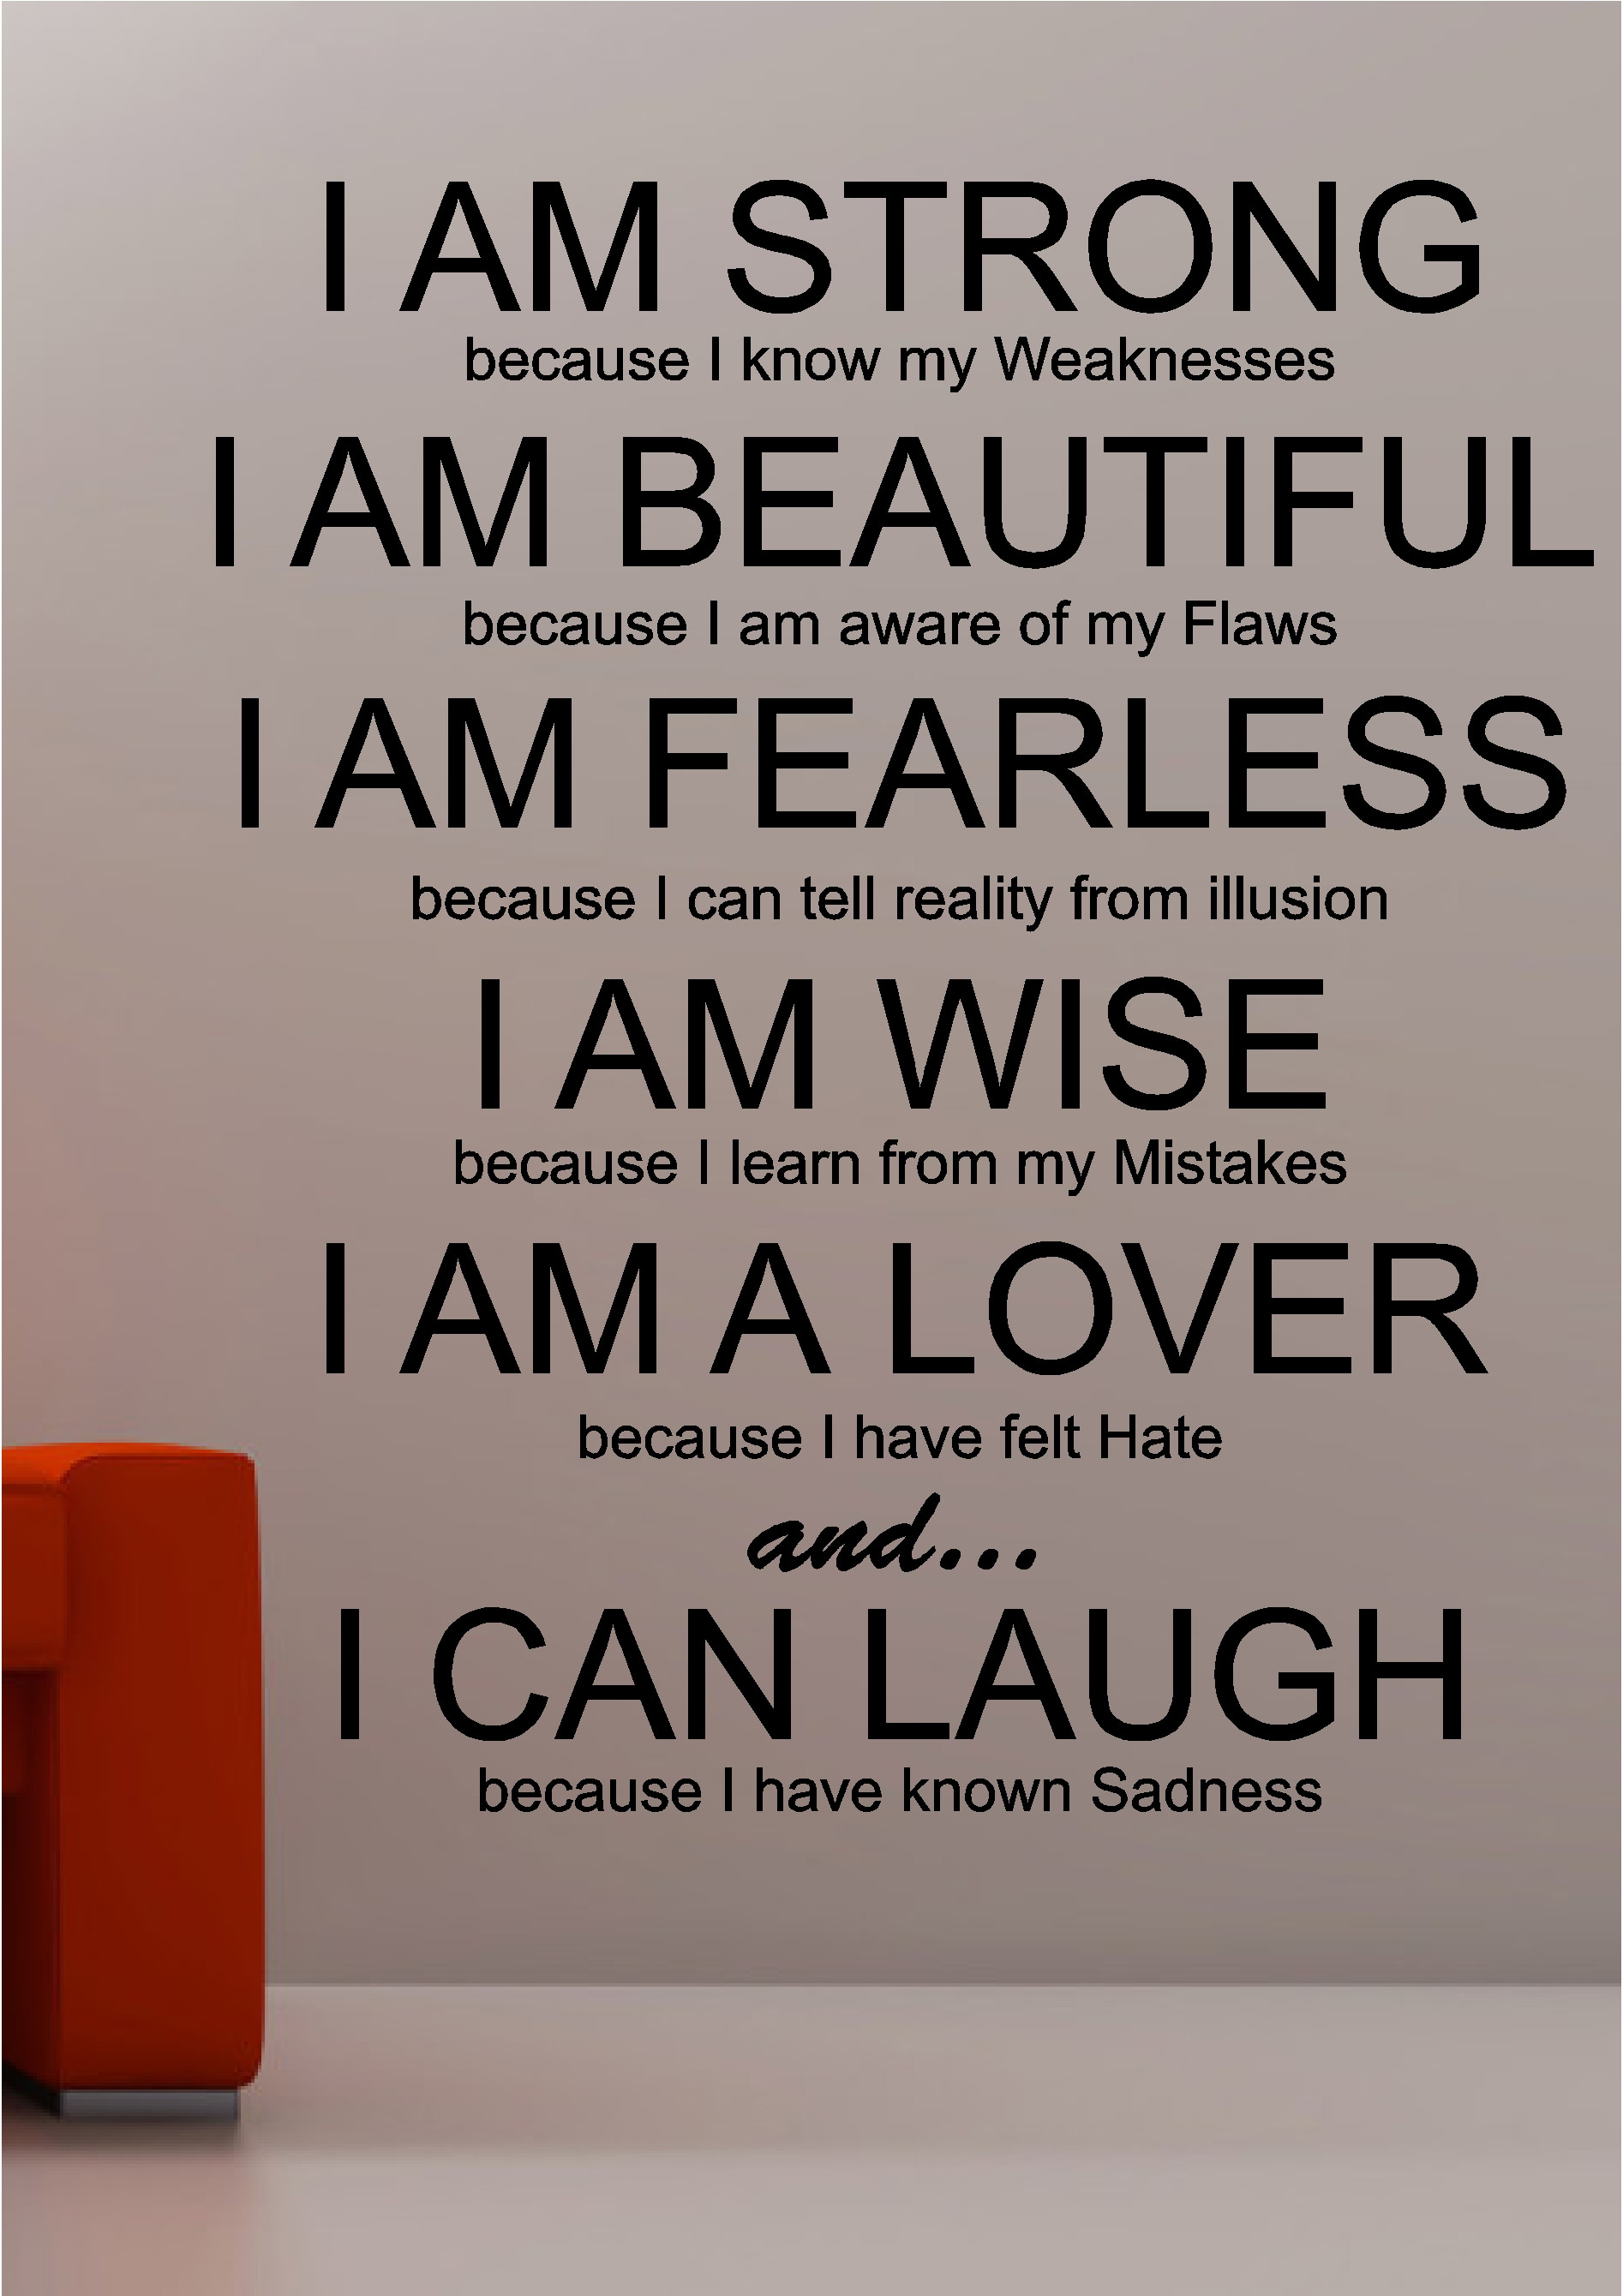 Strong Inspirational Quotes  I am Strong inspirational wall art quote sticker vinyl